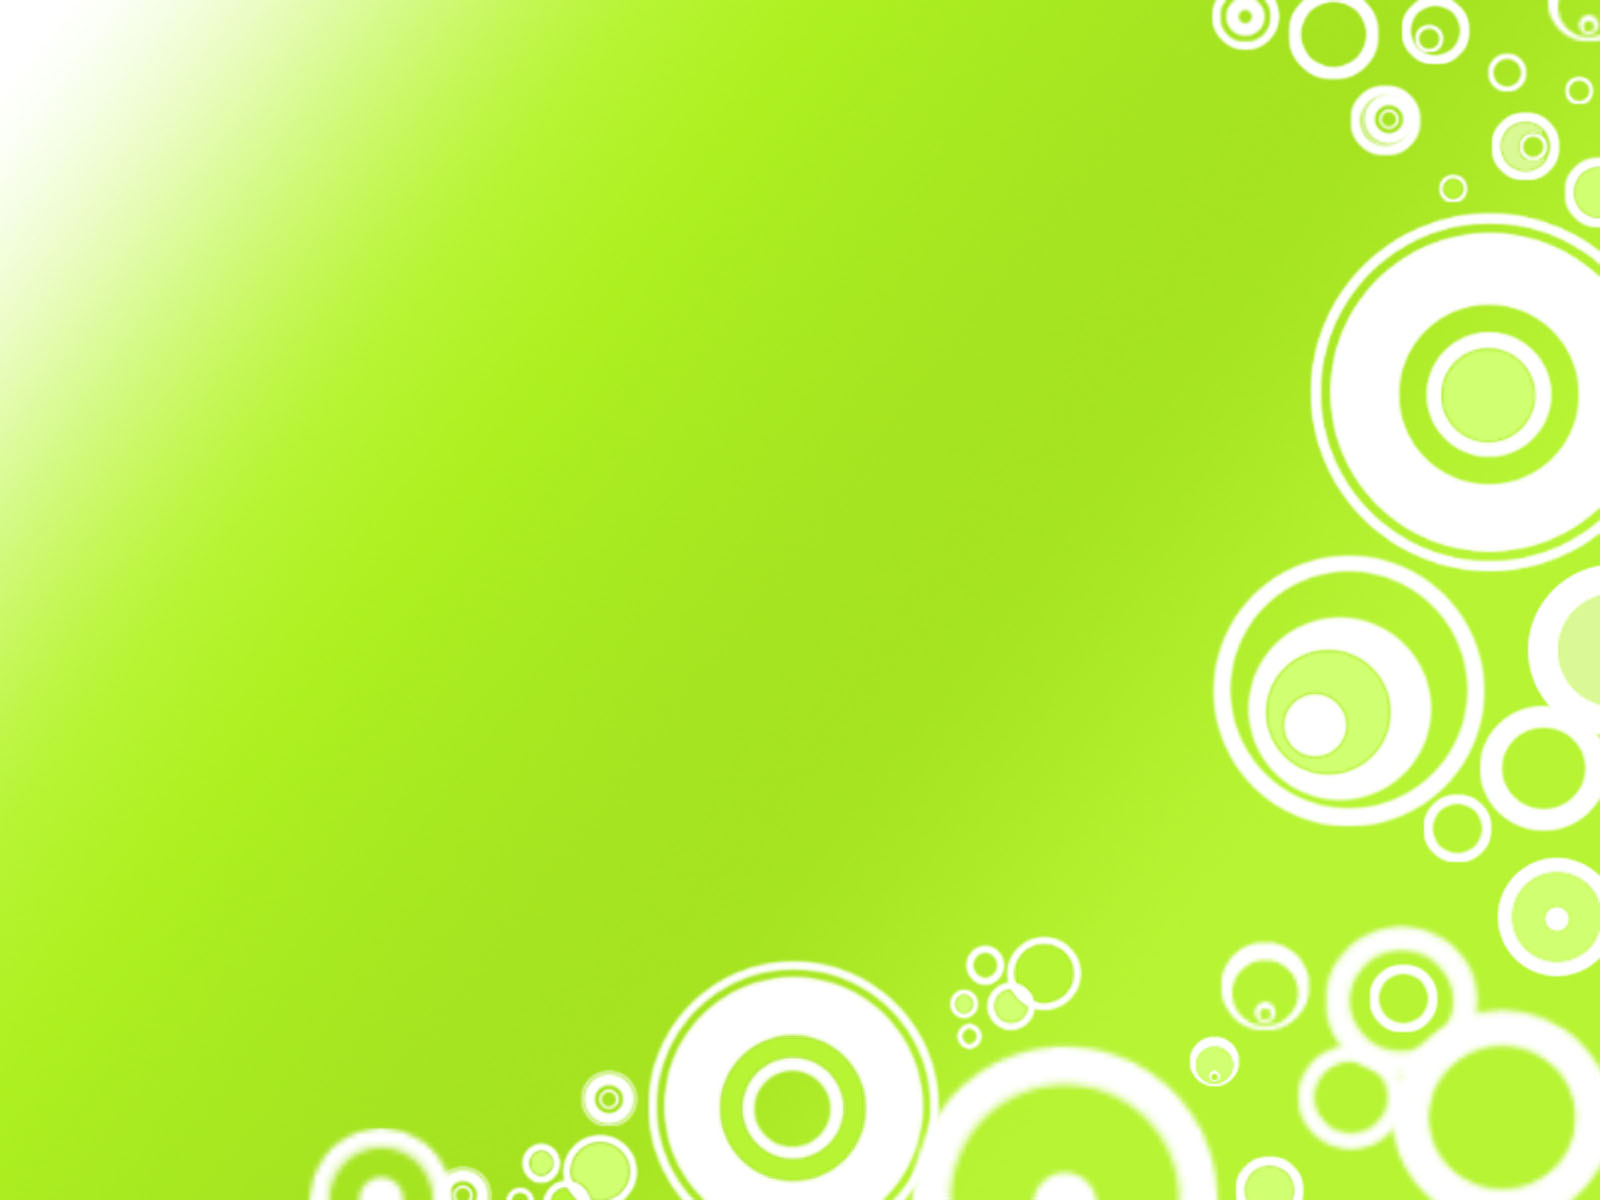 Download free light green circles free ppt for your powerpoint light green circles free ppt for your powerpoint templates photo ppt backgrounds toneelgroepblik Image collections